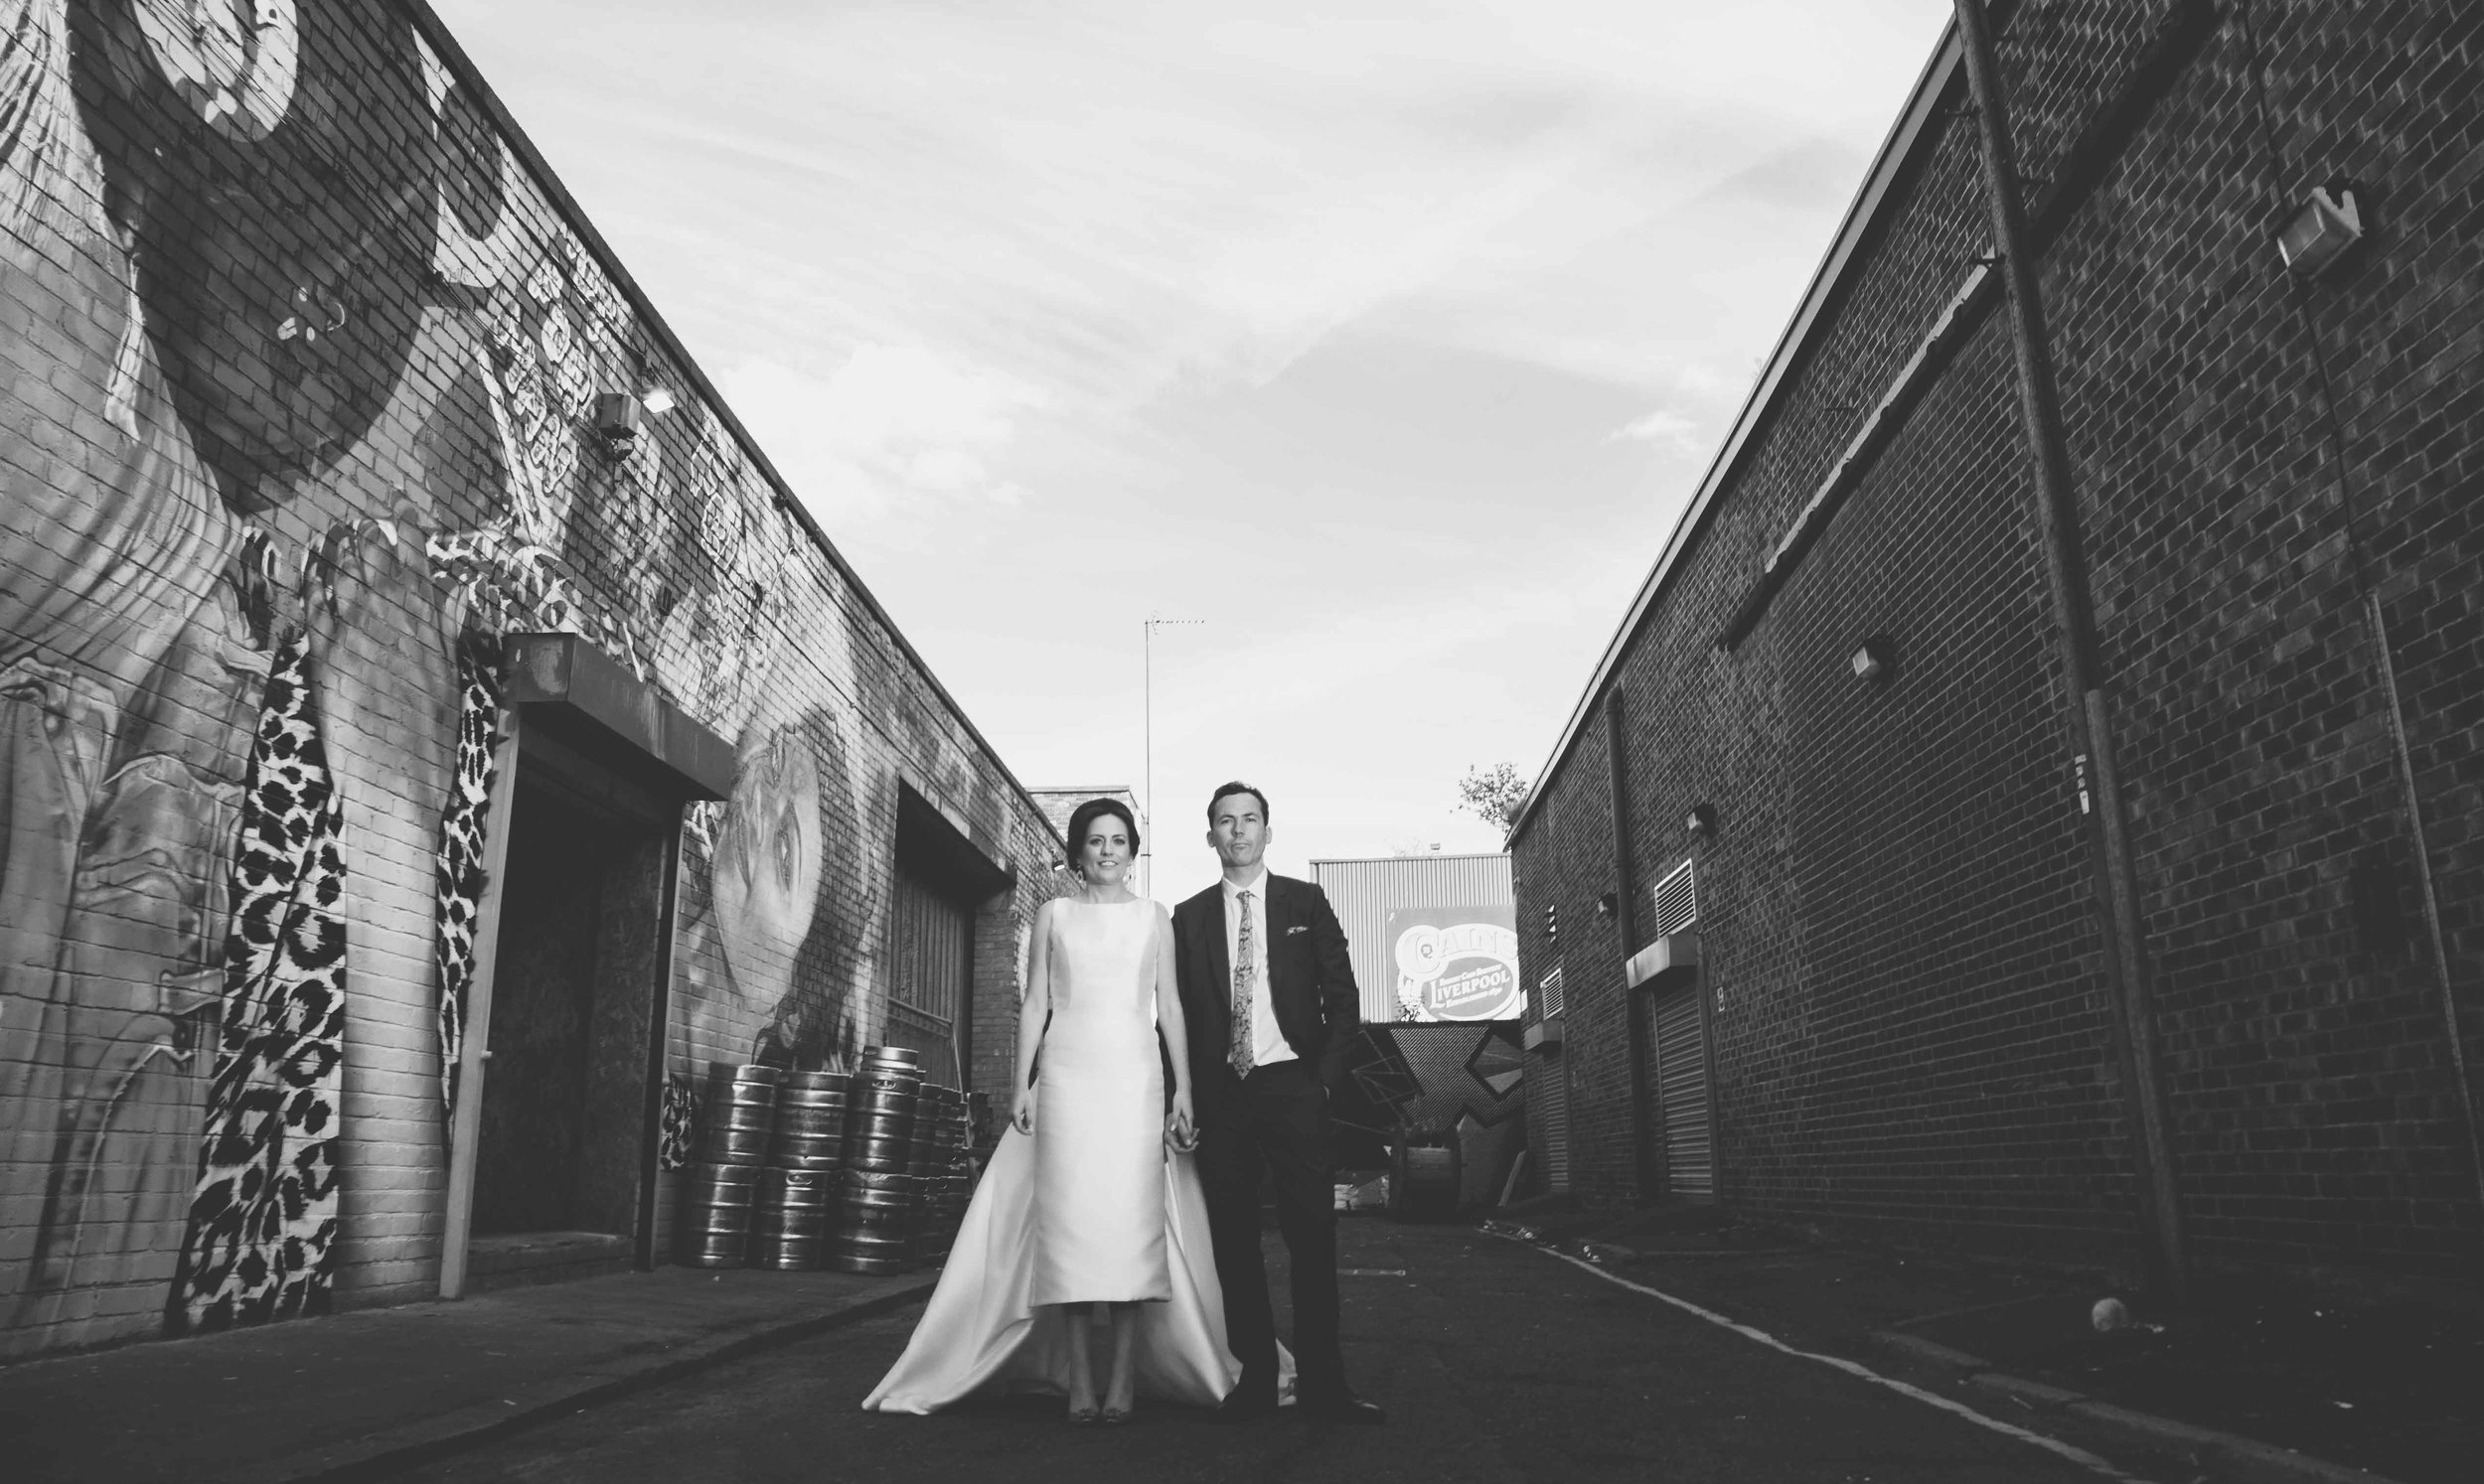 Wedding at the Constellations Liverpool (1 of 1)-5.jpg